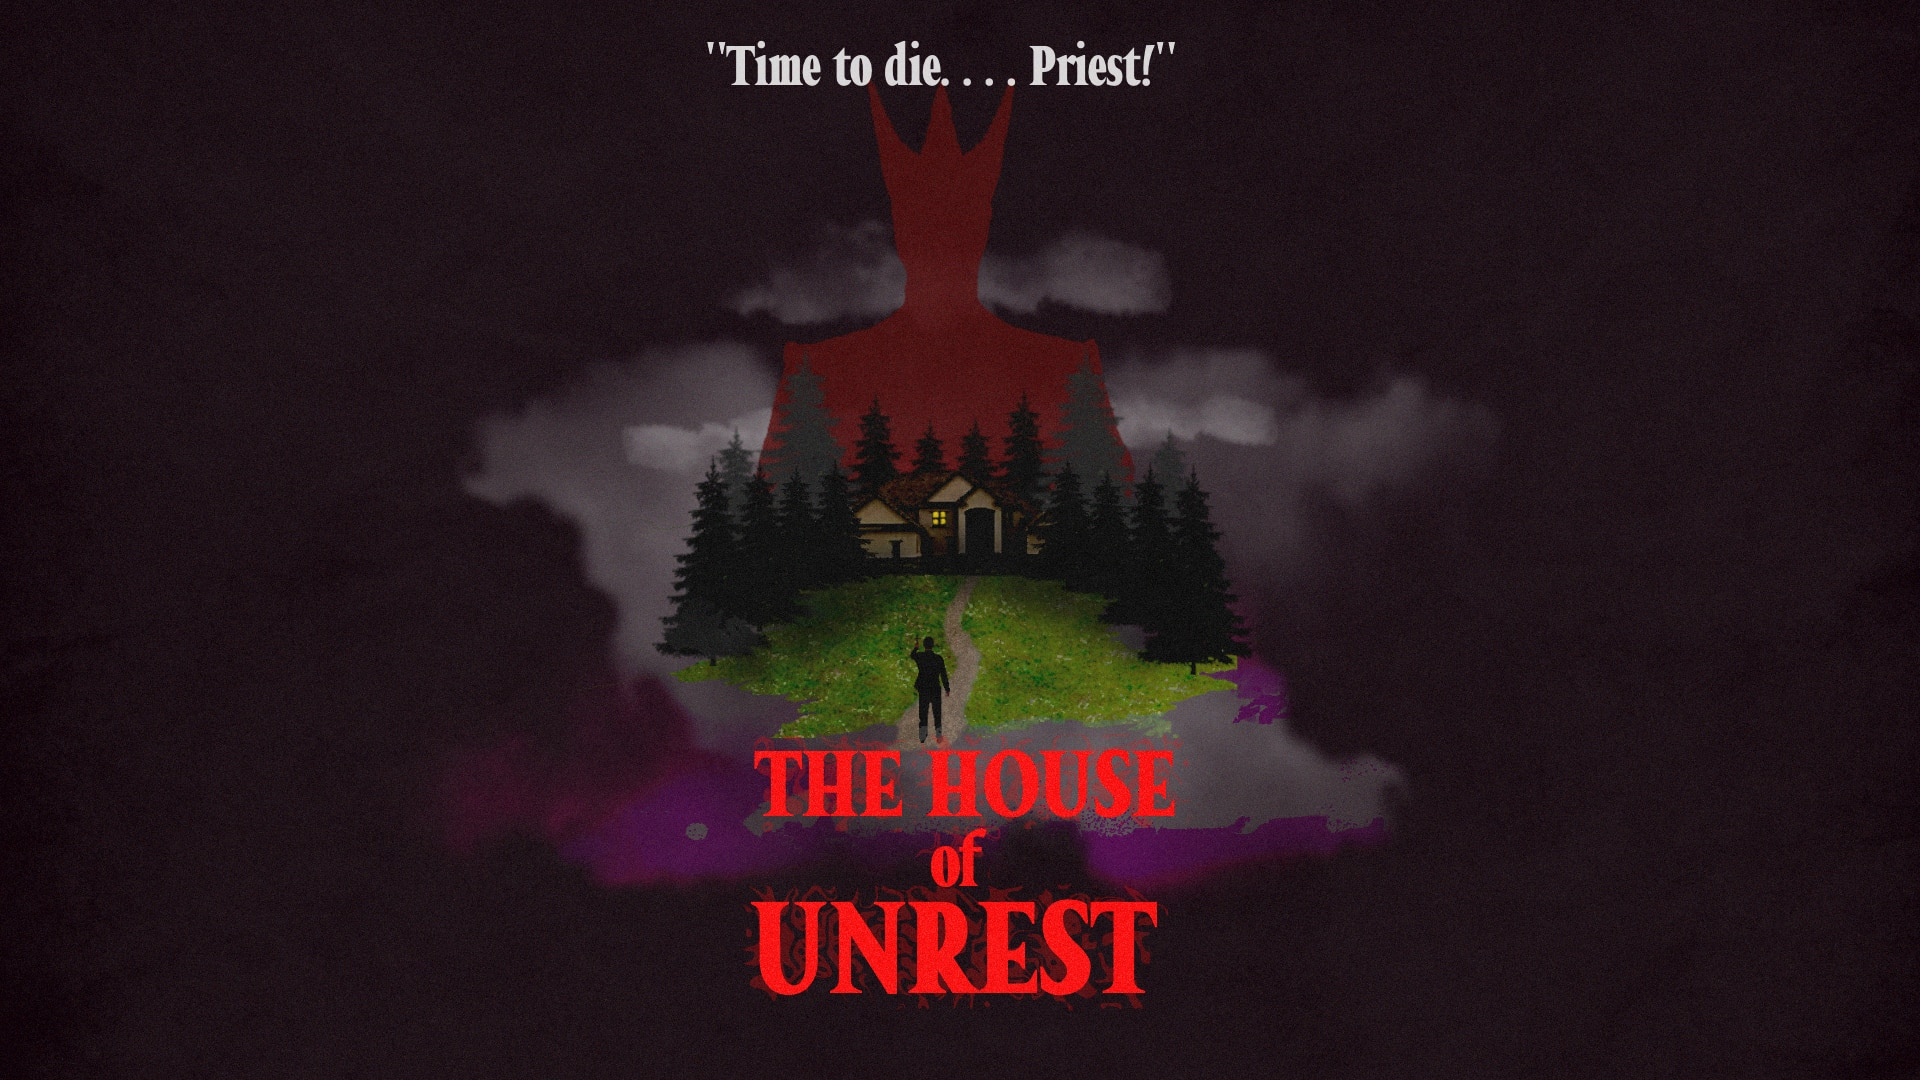 The House of Unrest